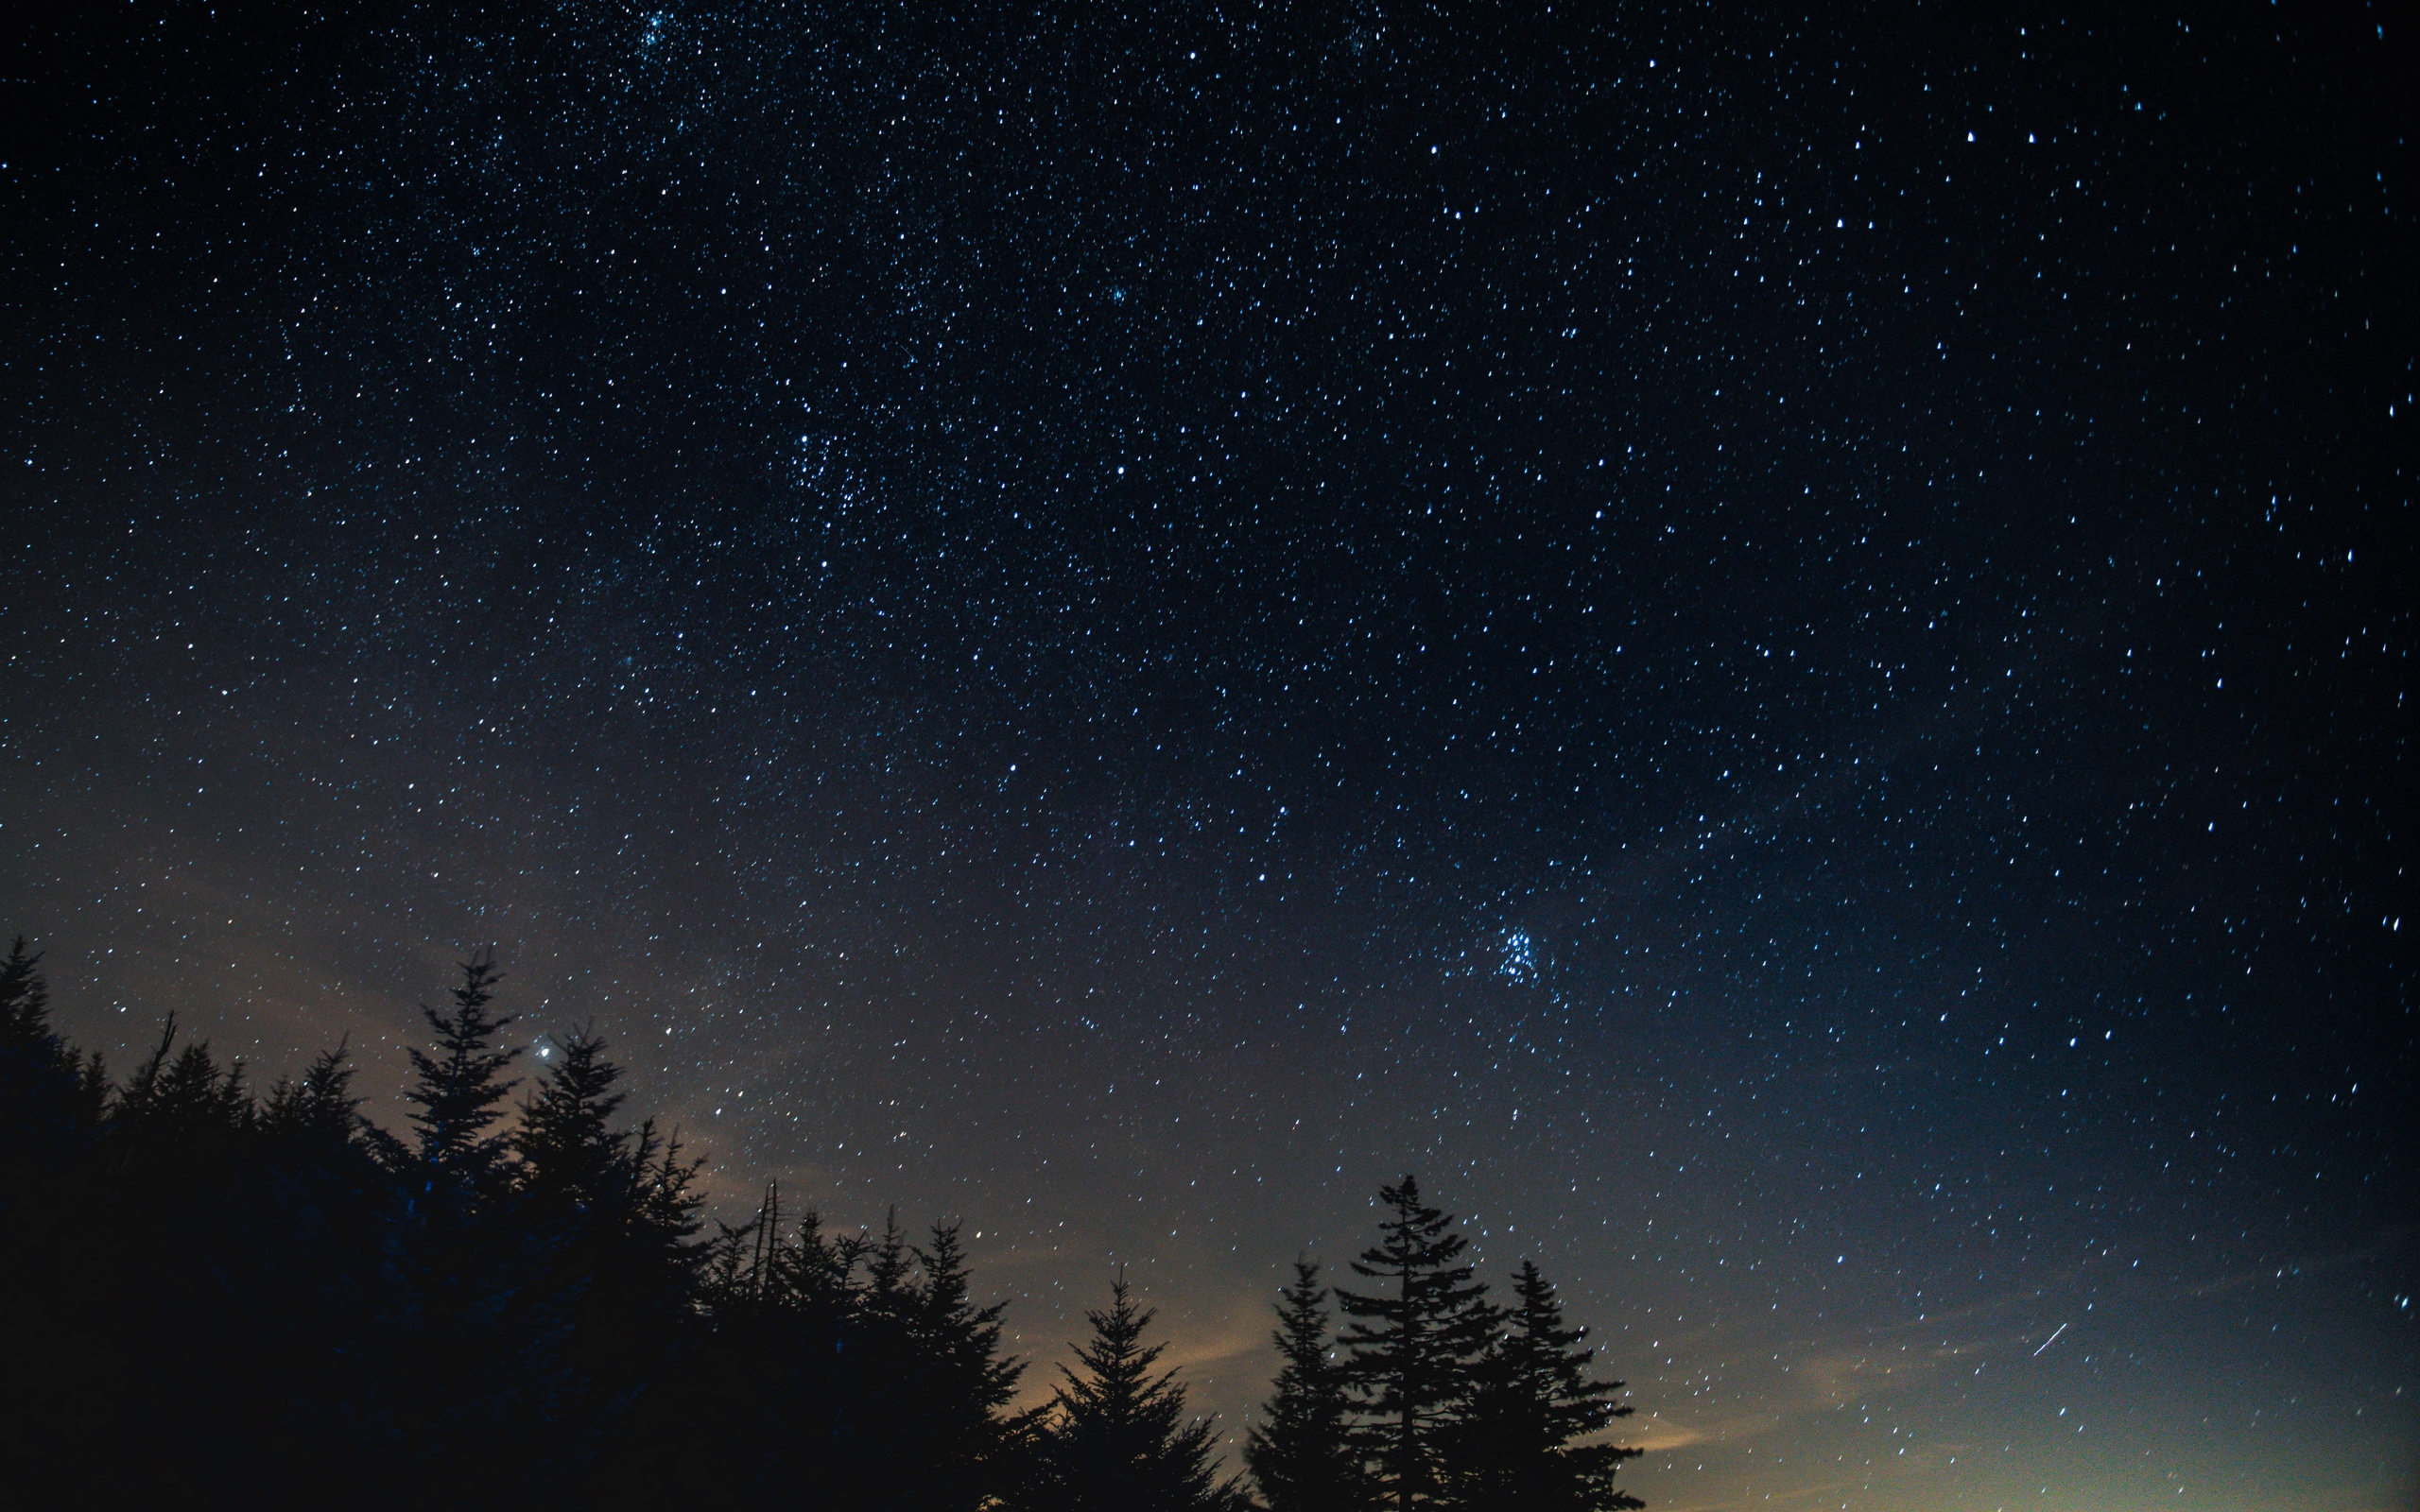 Download wallpapers 2560x1600 starry sky, night, trees, night